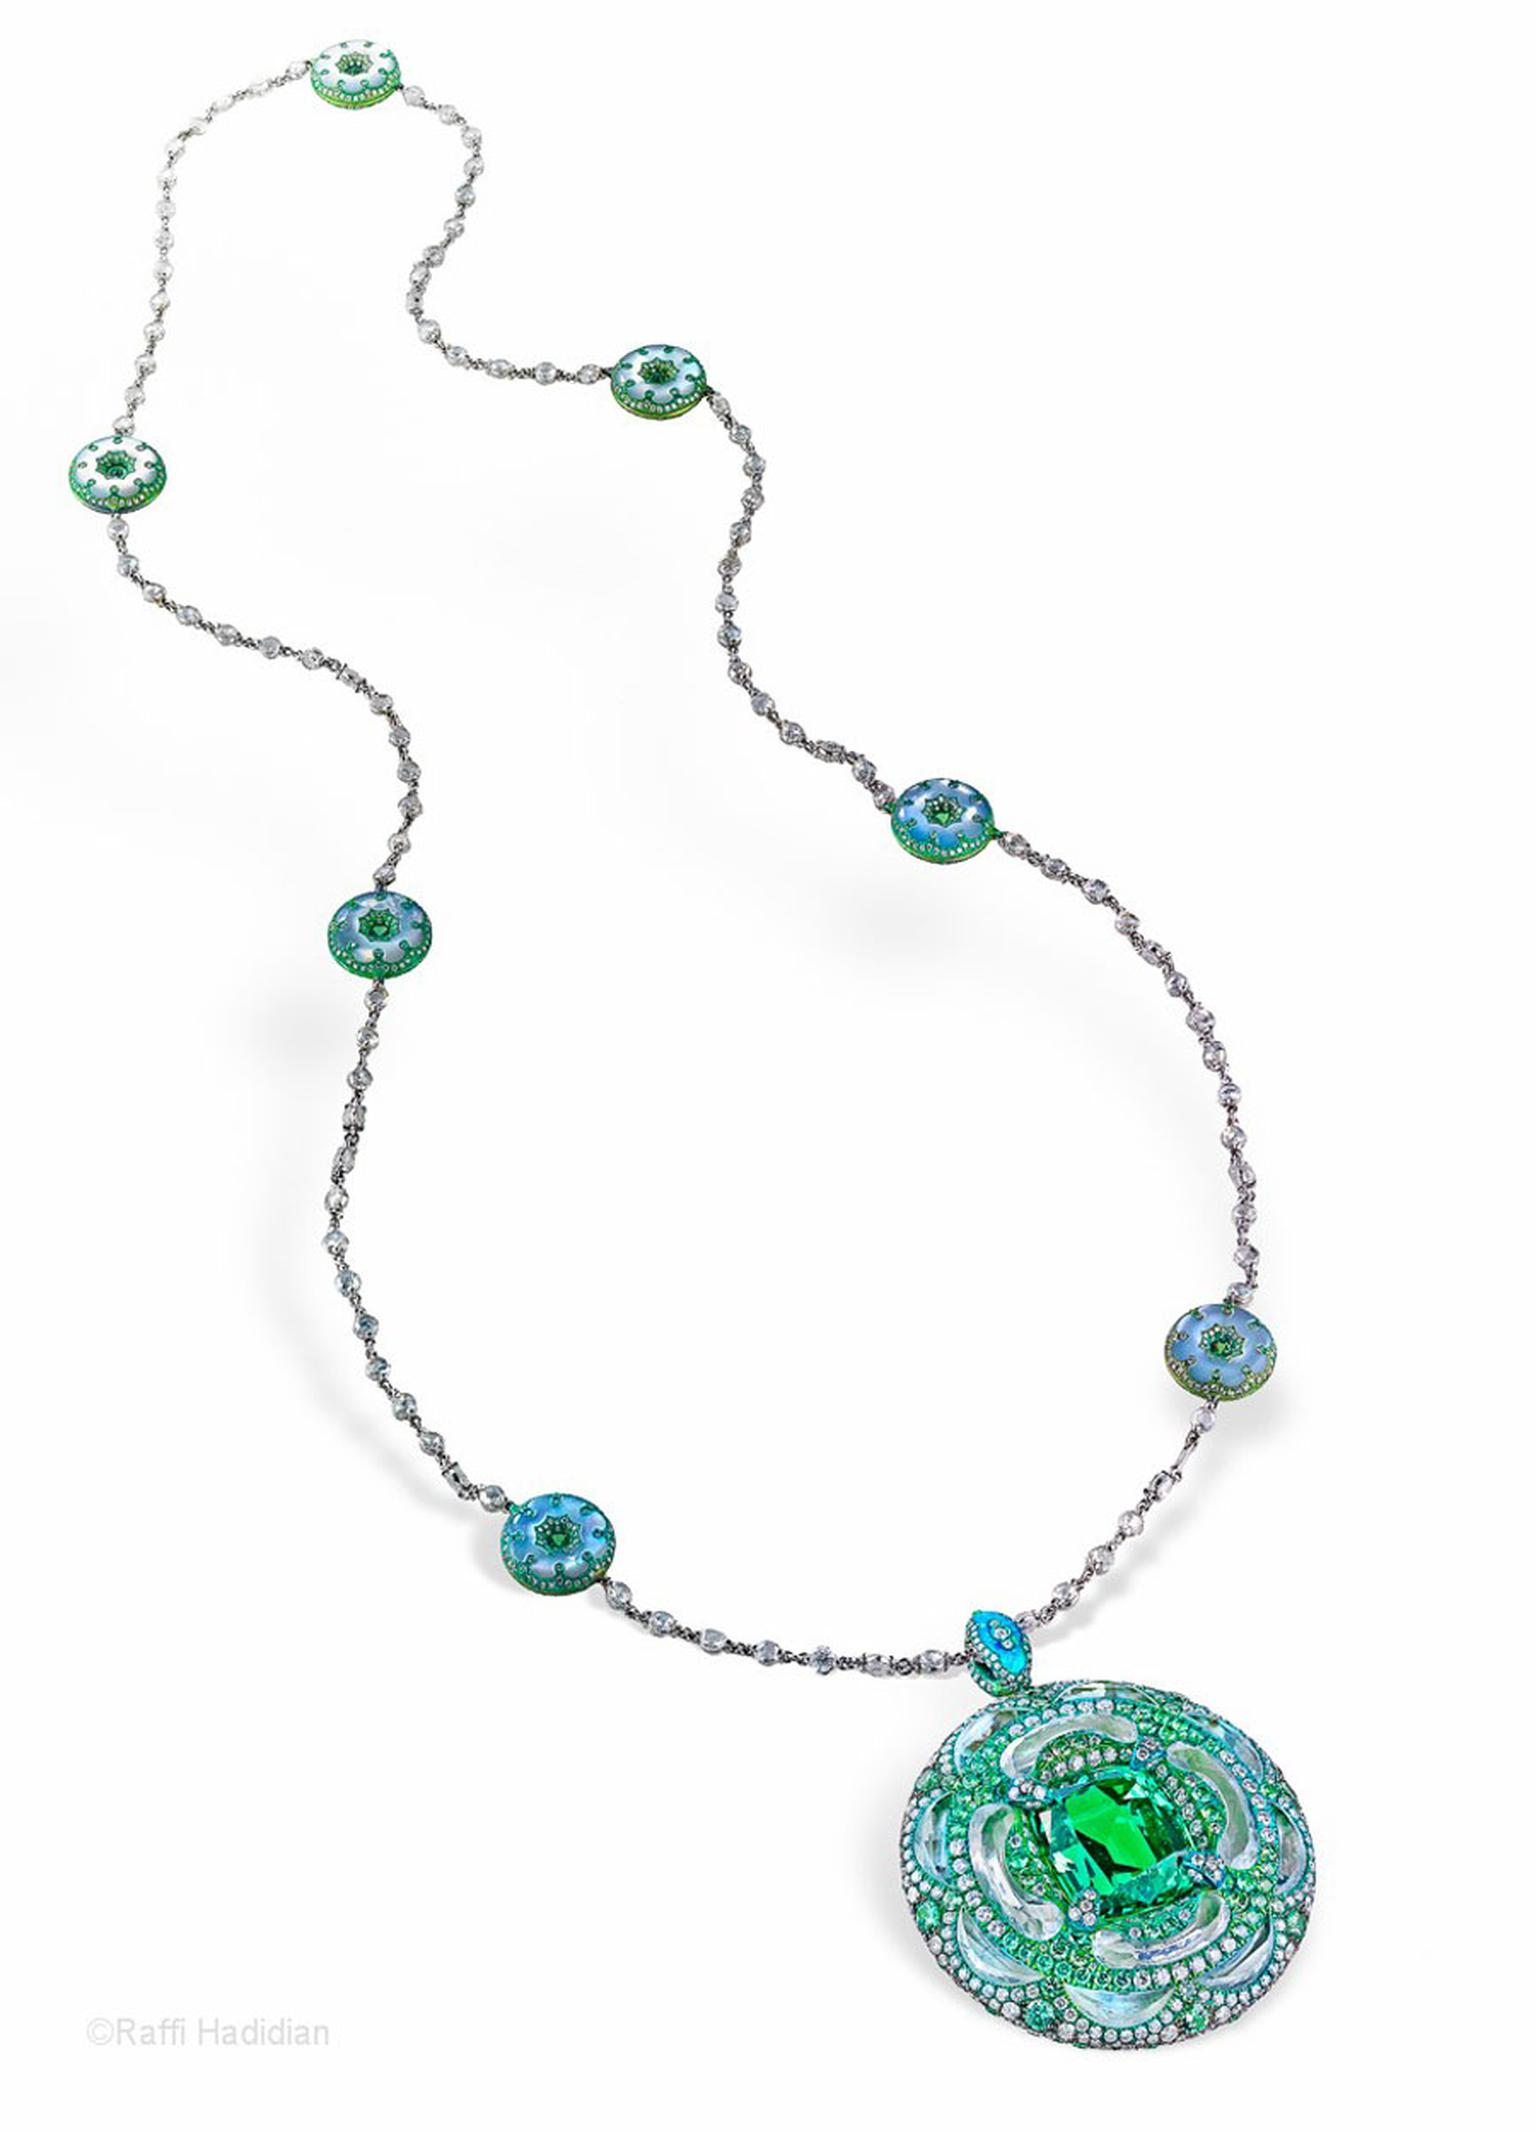 Arunashi took home the top award in the 'Coloured Gemstone Above 20k' category for this emerald pendant at the Couture Design Awards 2013.